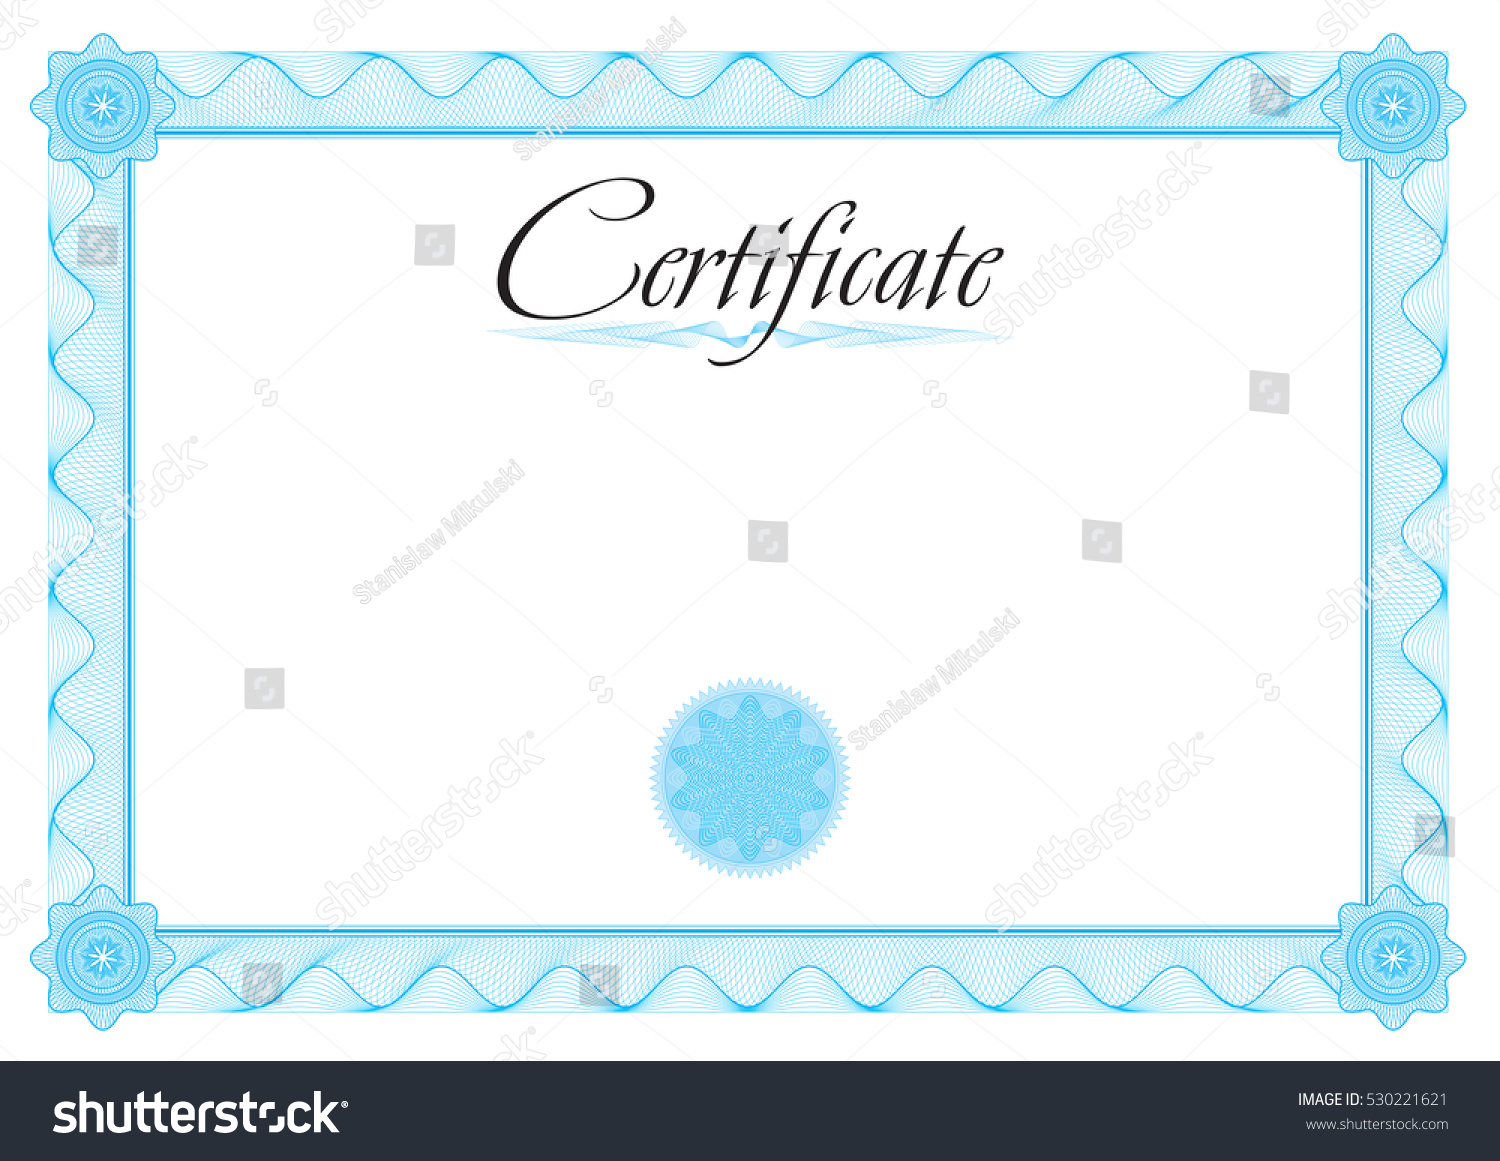 Certificate vector template images templates example free download certificate vector template diplomas currency size stock vector certificate vector template diplomas currency size a4 297 1betcityfo Gallery